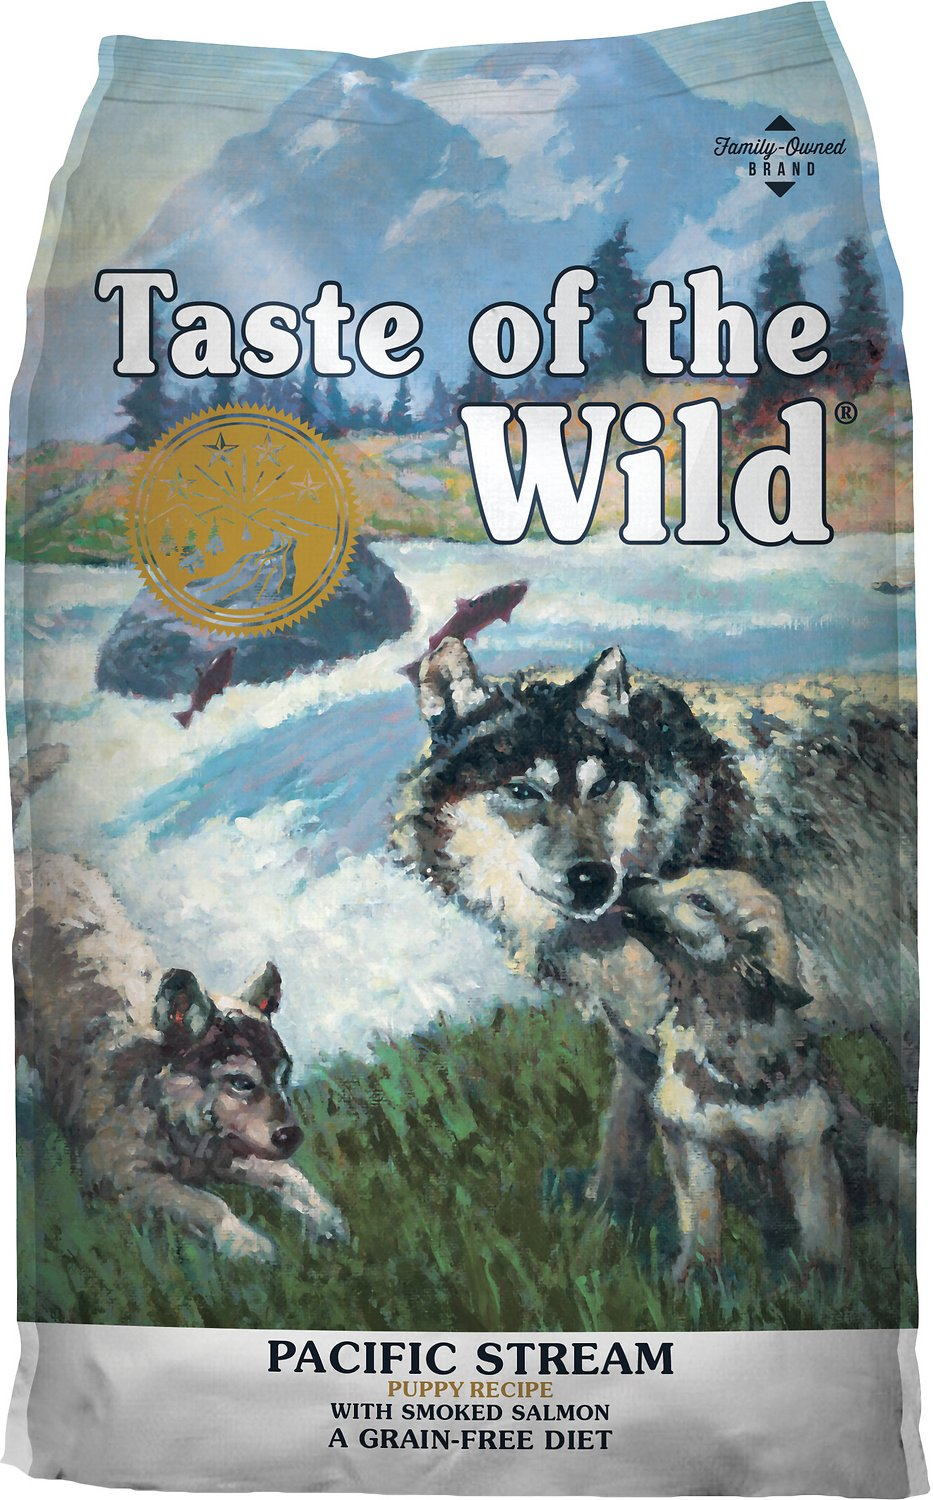 Taste of the Wild Dog Food Reviews, Coupons and Recalls